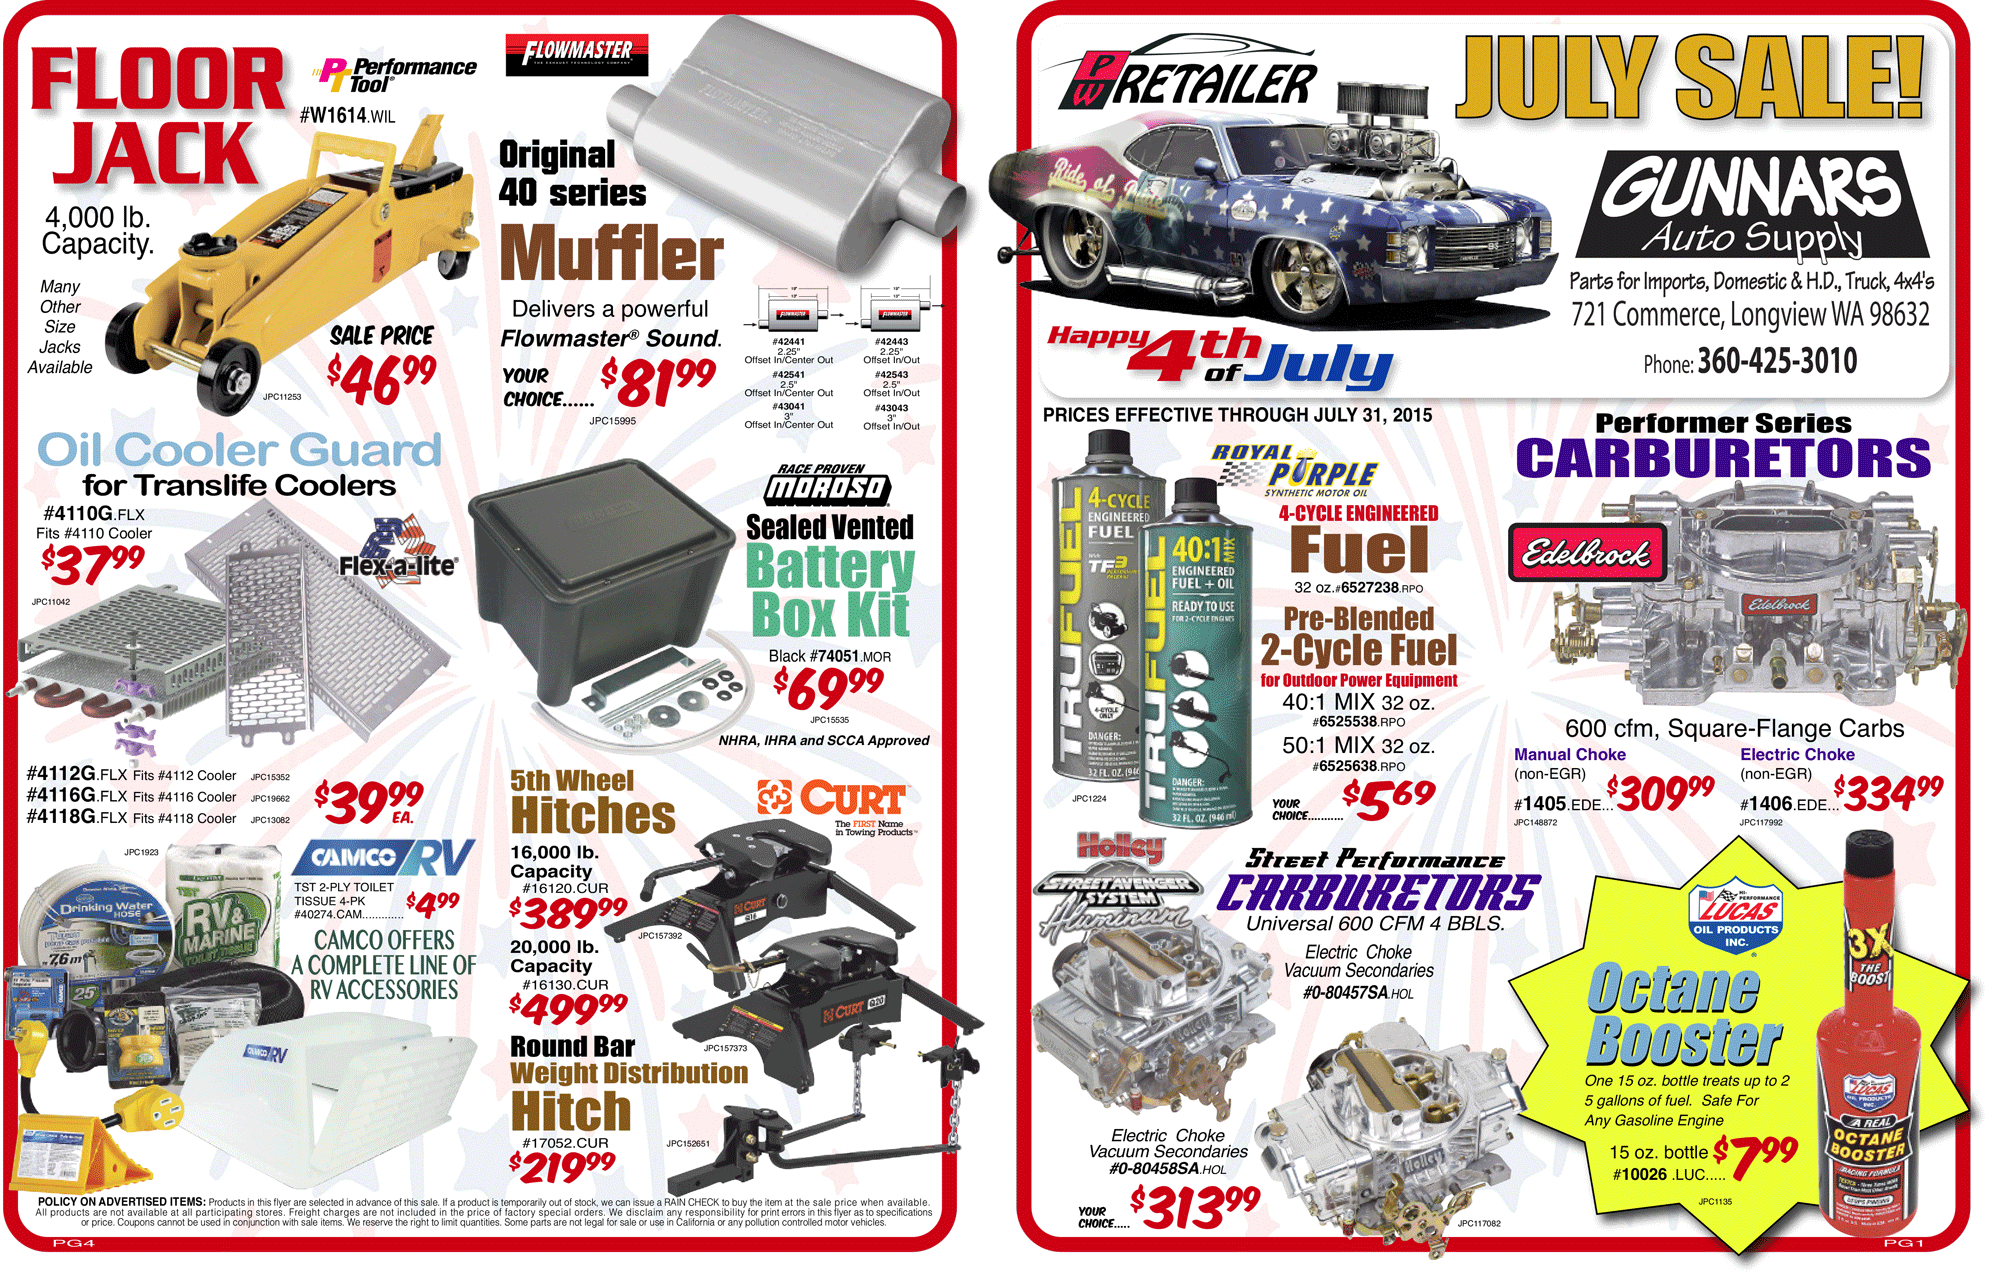 Gunnar's Auto Supply July 2015 Sales